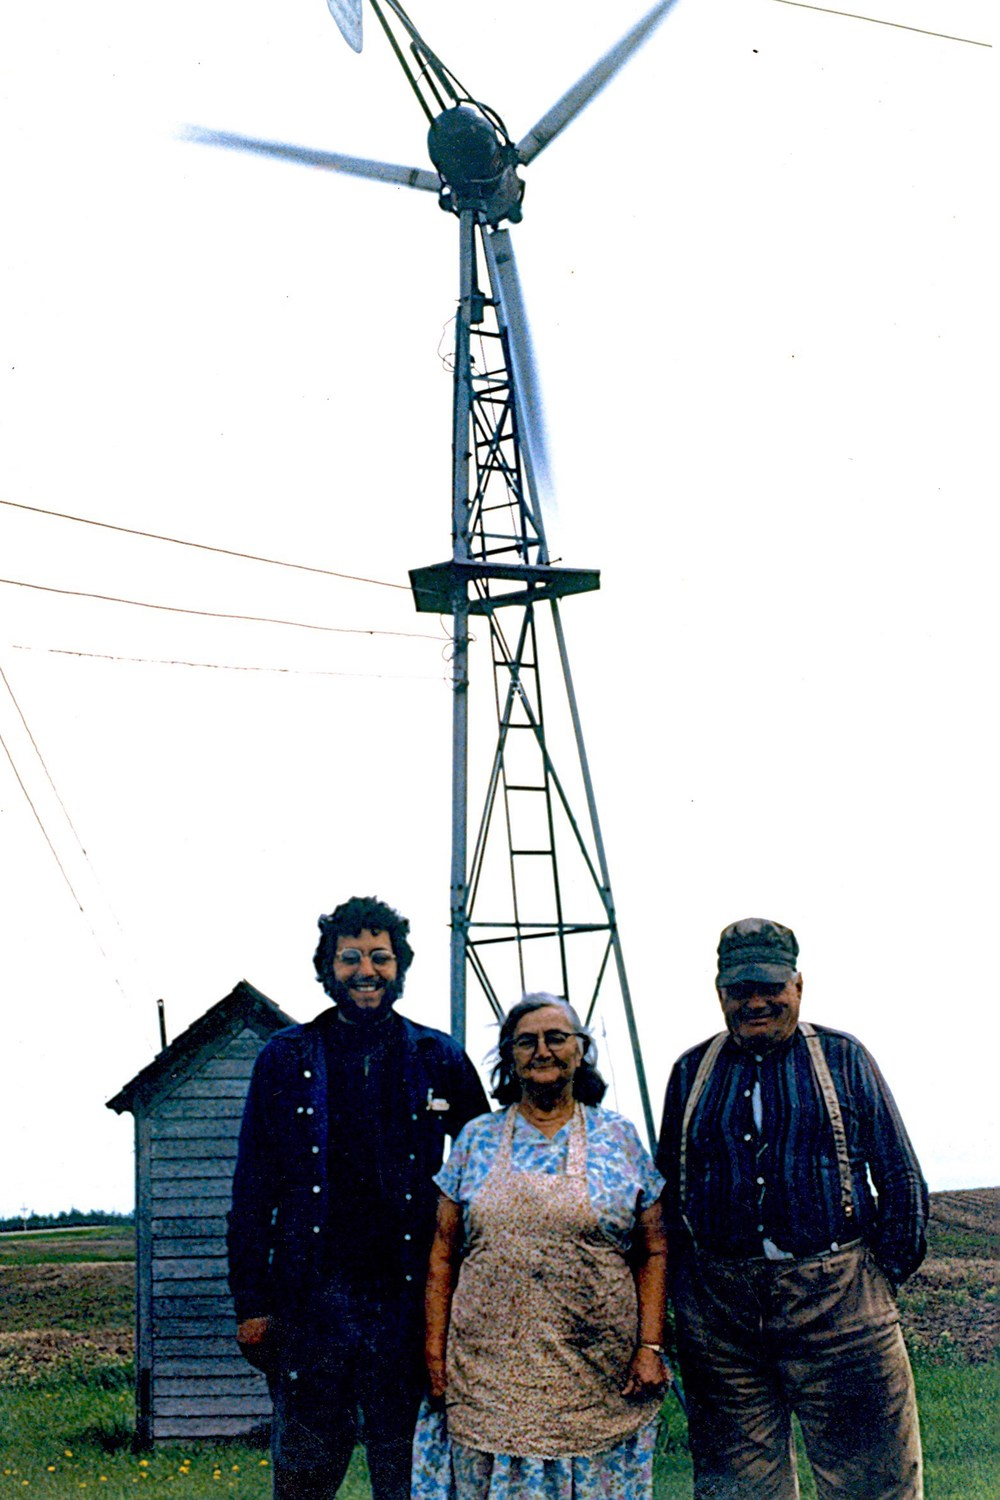 Archival photo of Don Mayer (center) pictured with Mr. & Mrs. Eldy Schragg, who were responsible for teaching him about the Jacob's Wind Generators. Photo courtesy of Don Mayer.